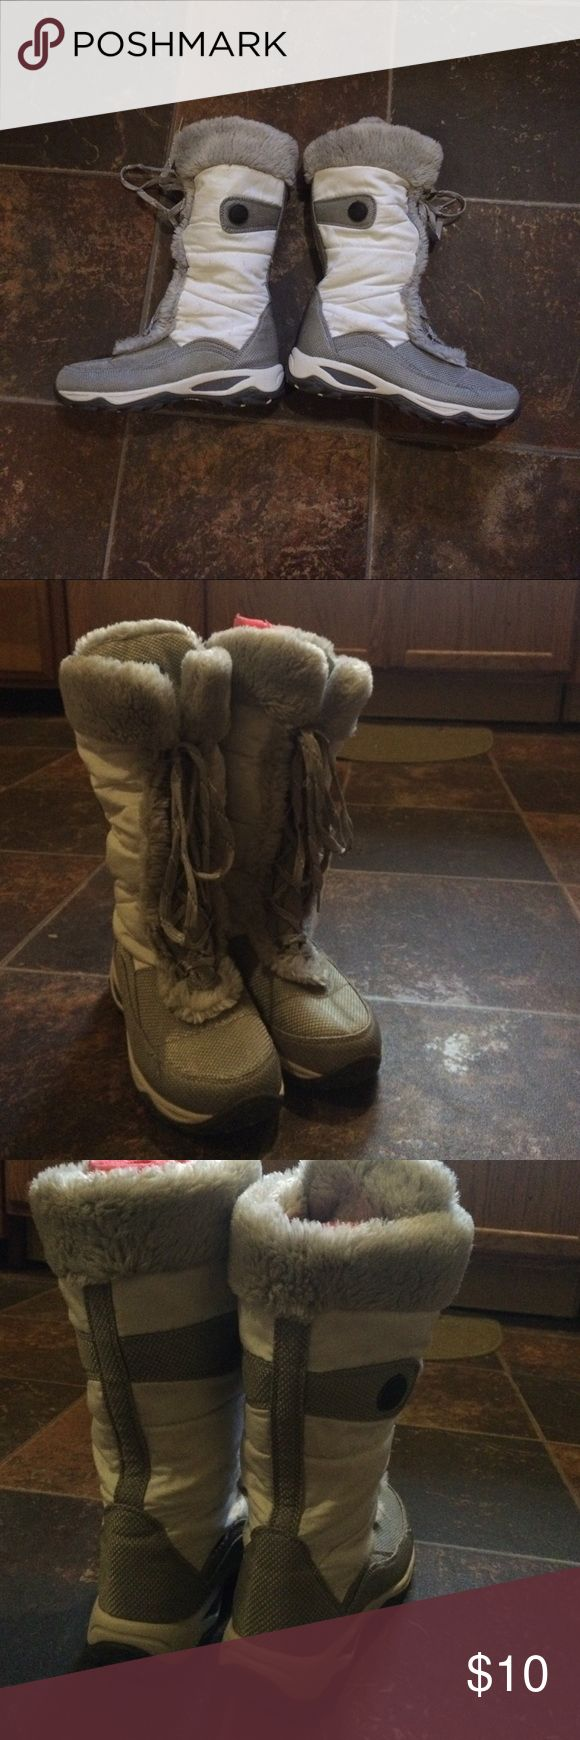 Boston accents winter boots In good condition Preloved Boston accents winter boots. Weather resistant non skid soles and heels Not LL bean just posted as to get exposure L.L. Bean Shoes Winter & Rain Boots